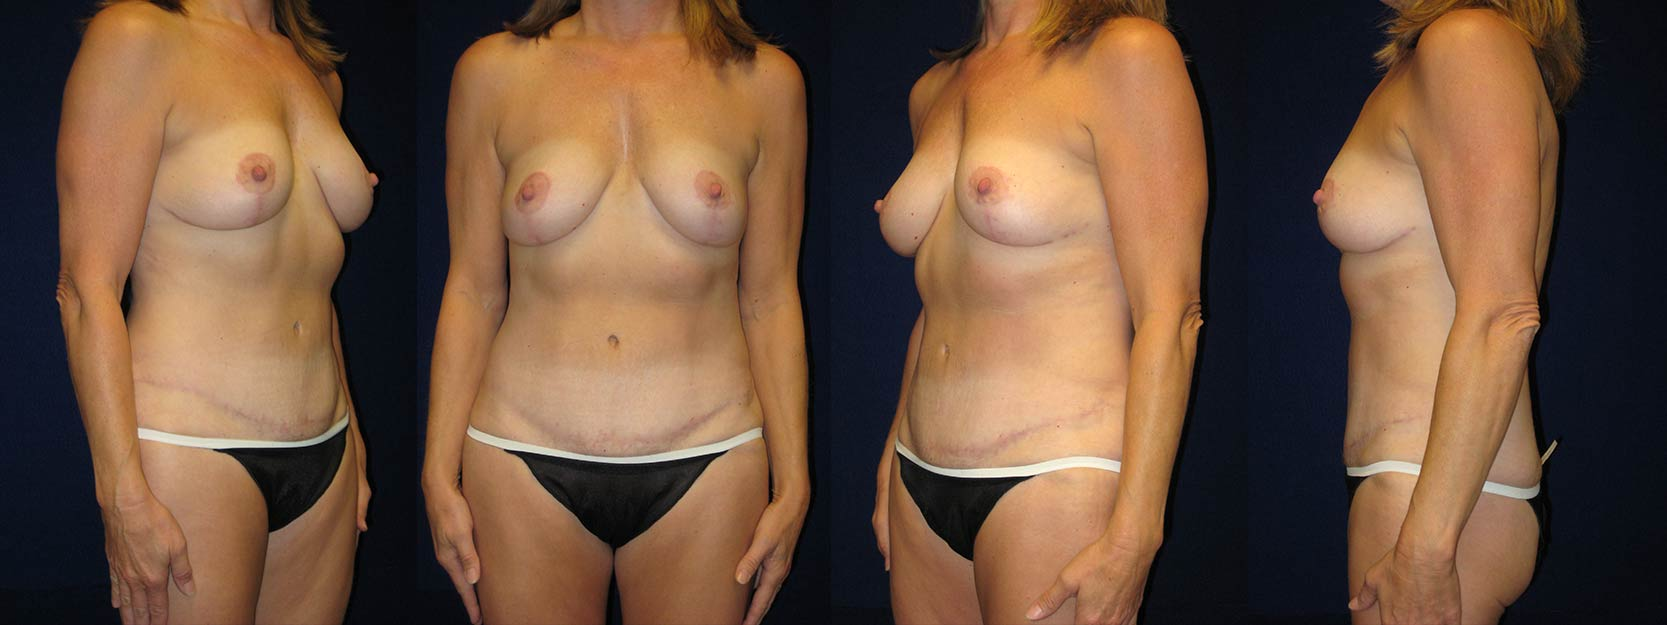 Full View - Breast Lift and Tummy Tuck After Pregnancy